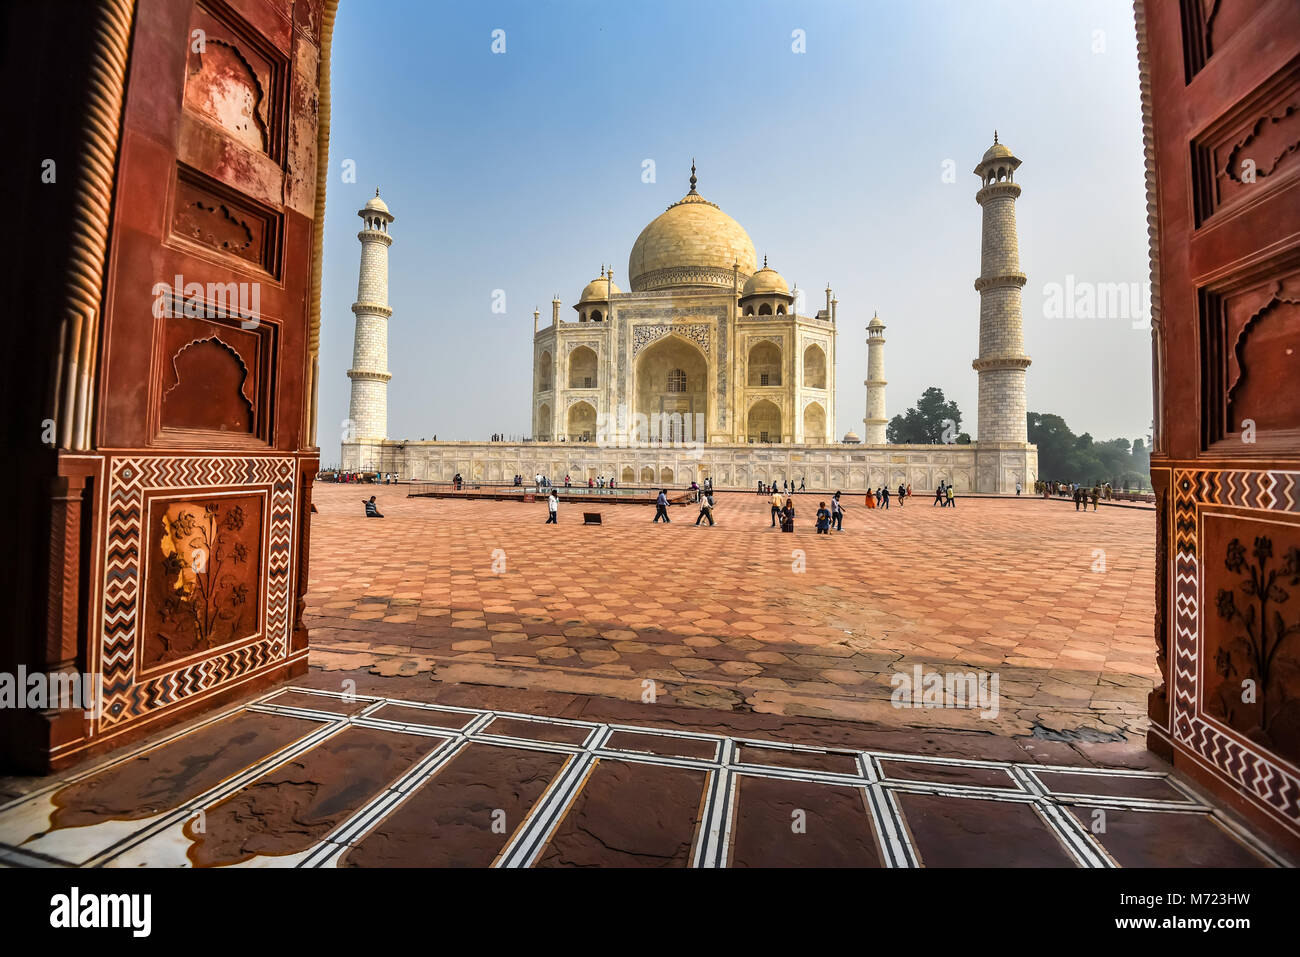 AGRA, INDIA - NOVEMBER 8, 2017: Taj Mahal scenic view from mosque in Agra, India. - Stock Image